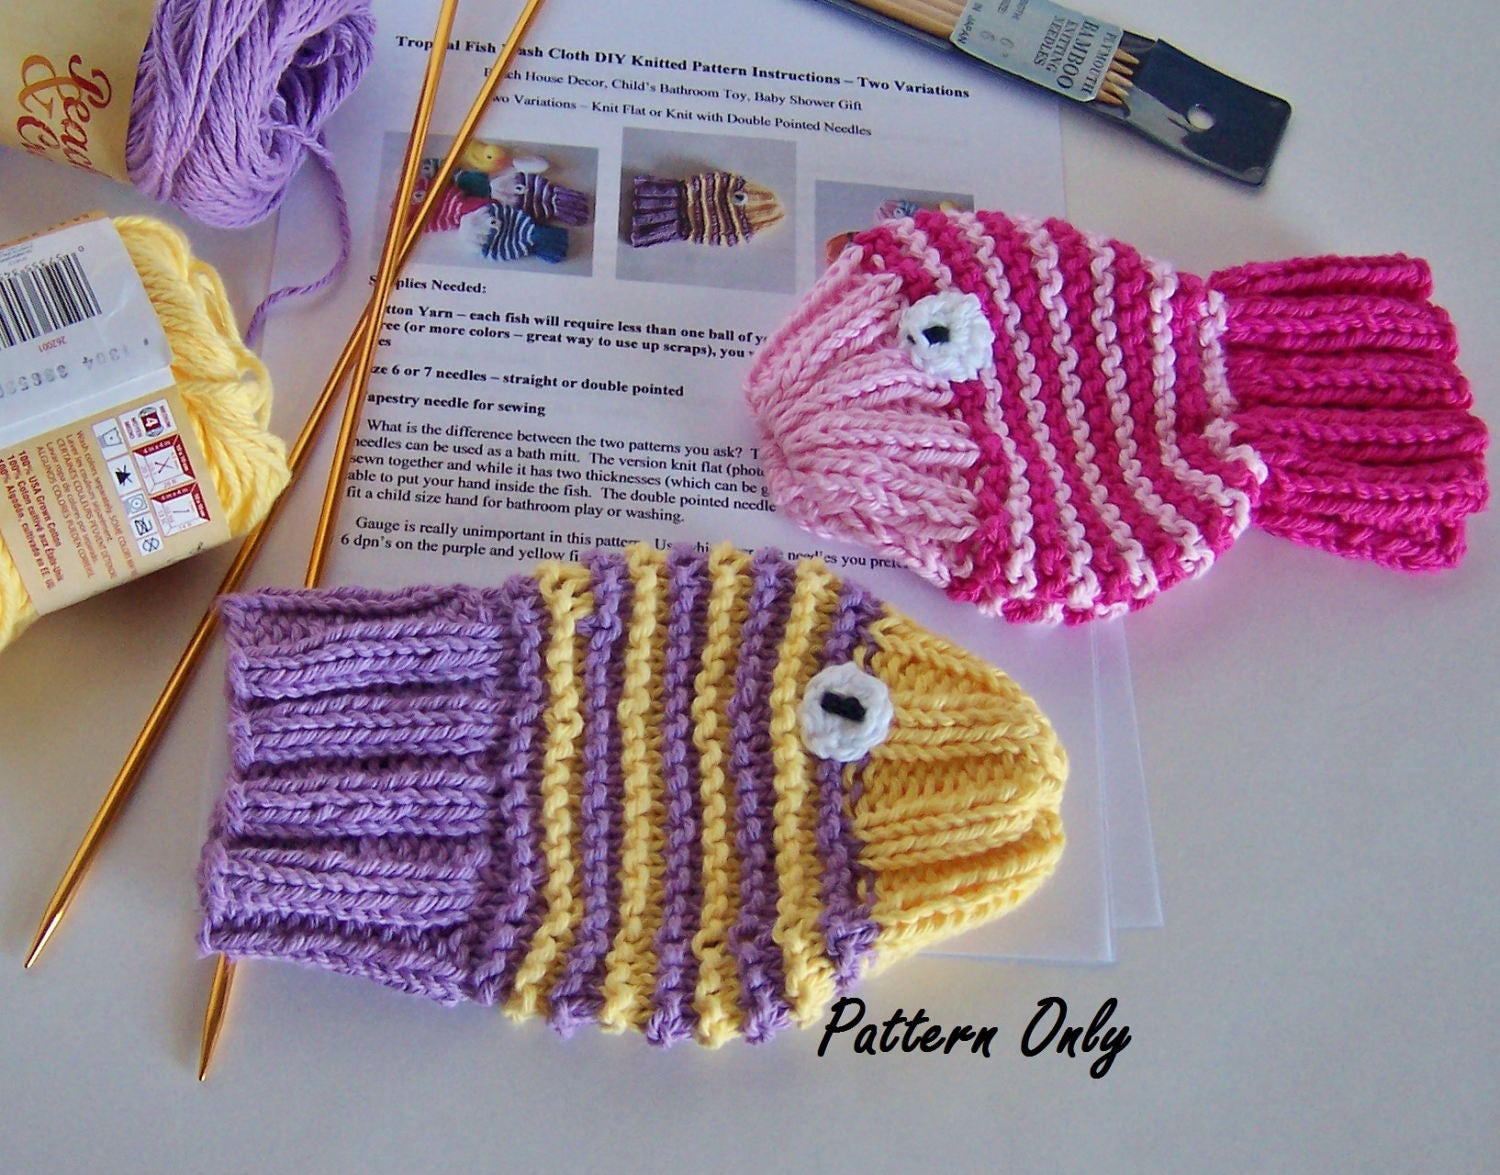 Tropical Fish Knitting Pattern DIY Instructions 2